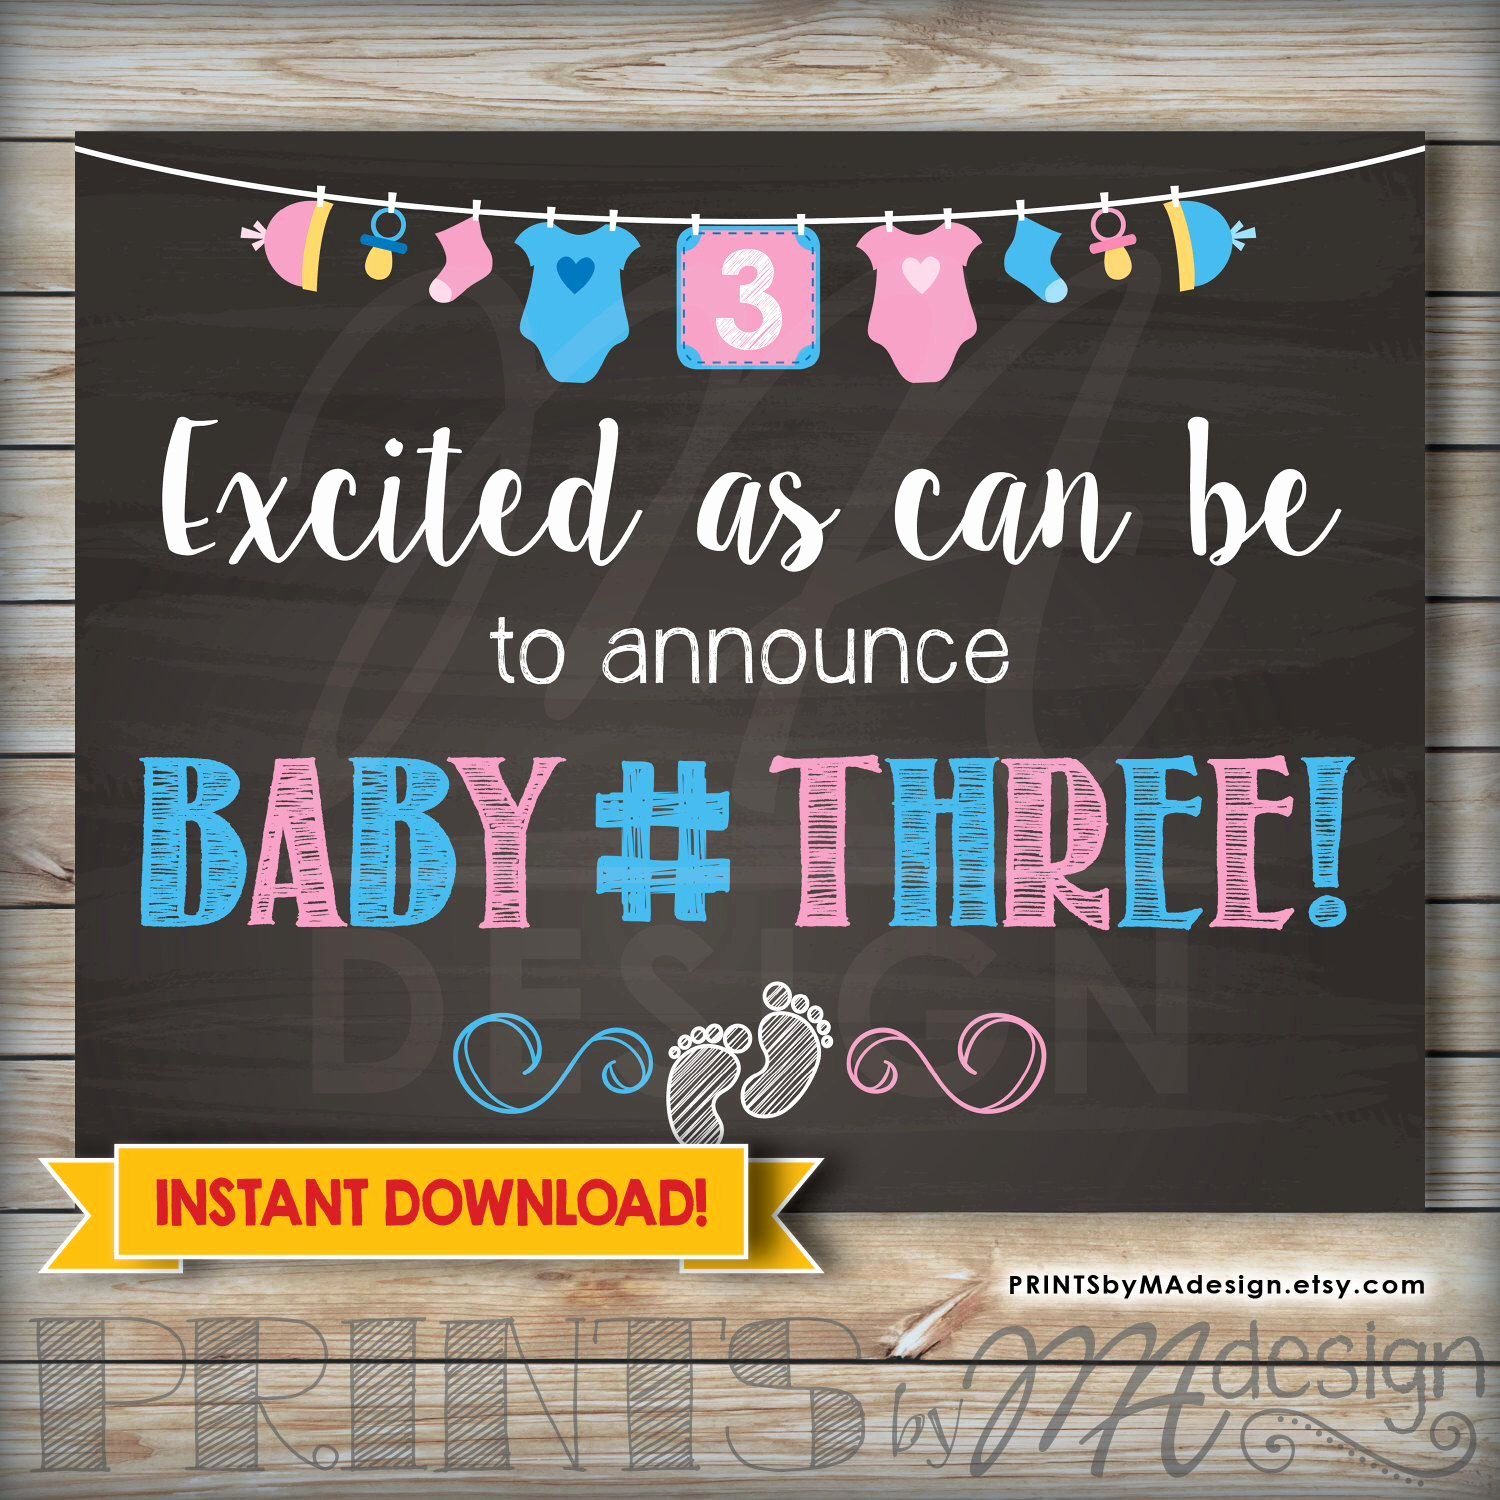 Free Printable Pregnancy Announcements New Baby Number 3 Pregnancy Announcement Printable 8x10 16x20